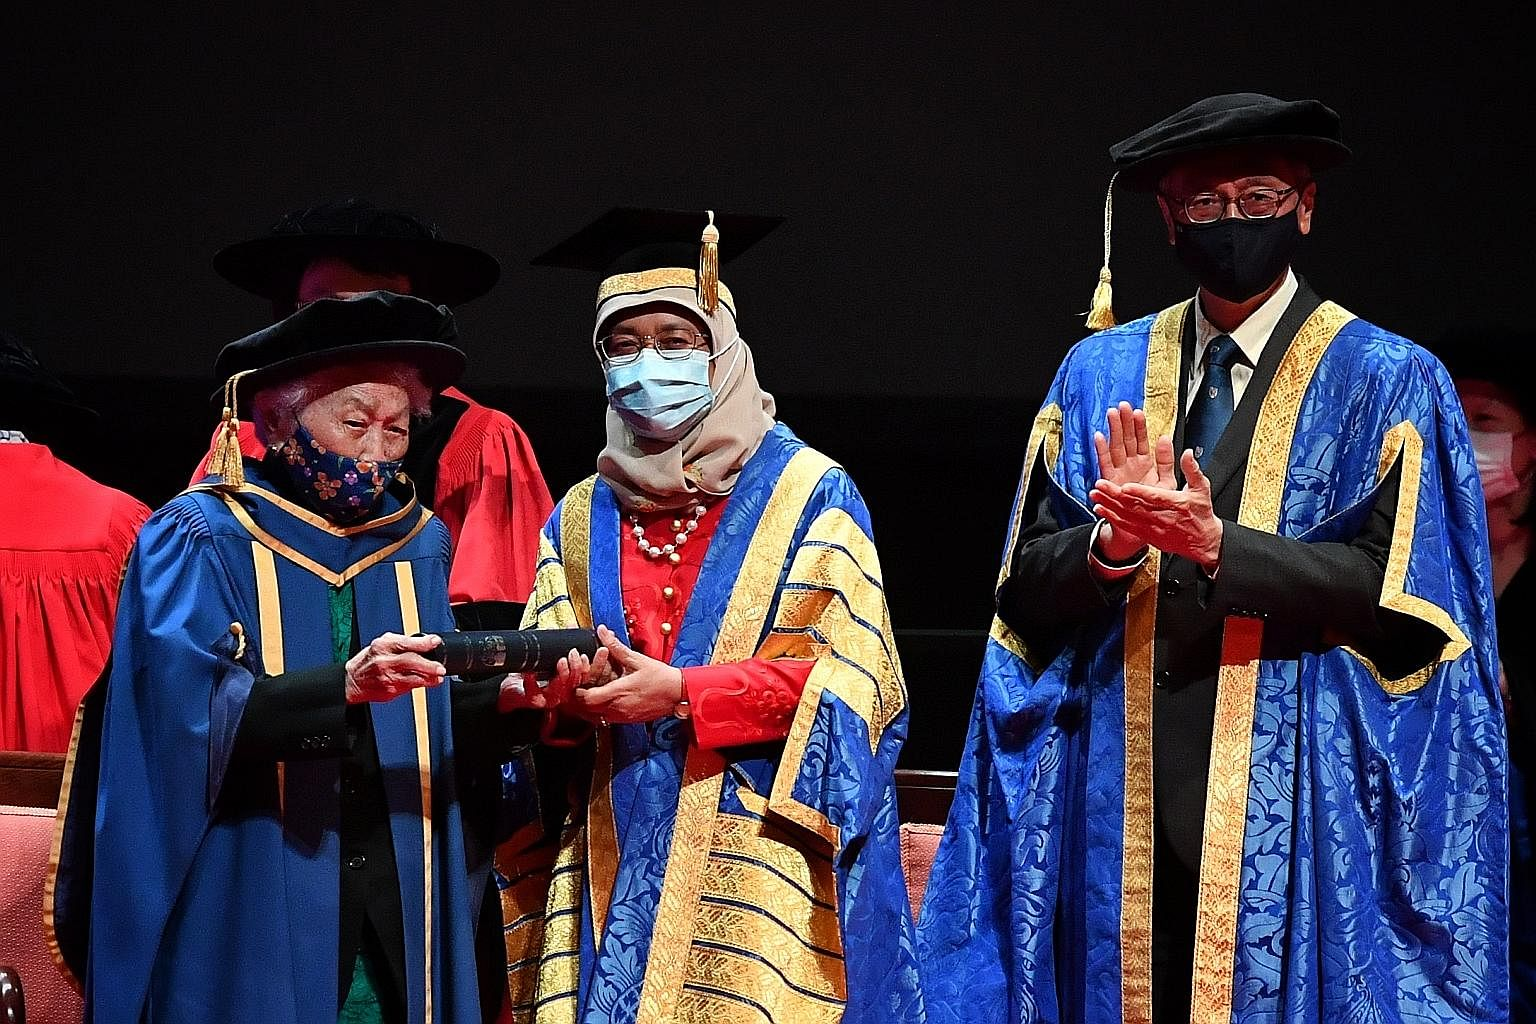 Dr Oon Chiew Seng, 104, receiving an honorary National University of Singapore (NUS) degree from President Halimah Yacob, who is also NUS chancellor, at a ceremony held at the University Cultural Centre yesterday. Dr Oon was one of Singapore's first